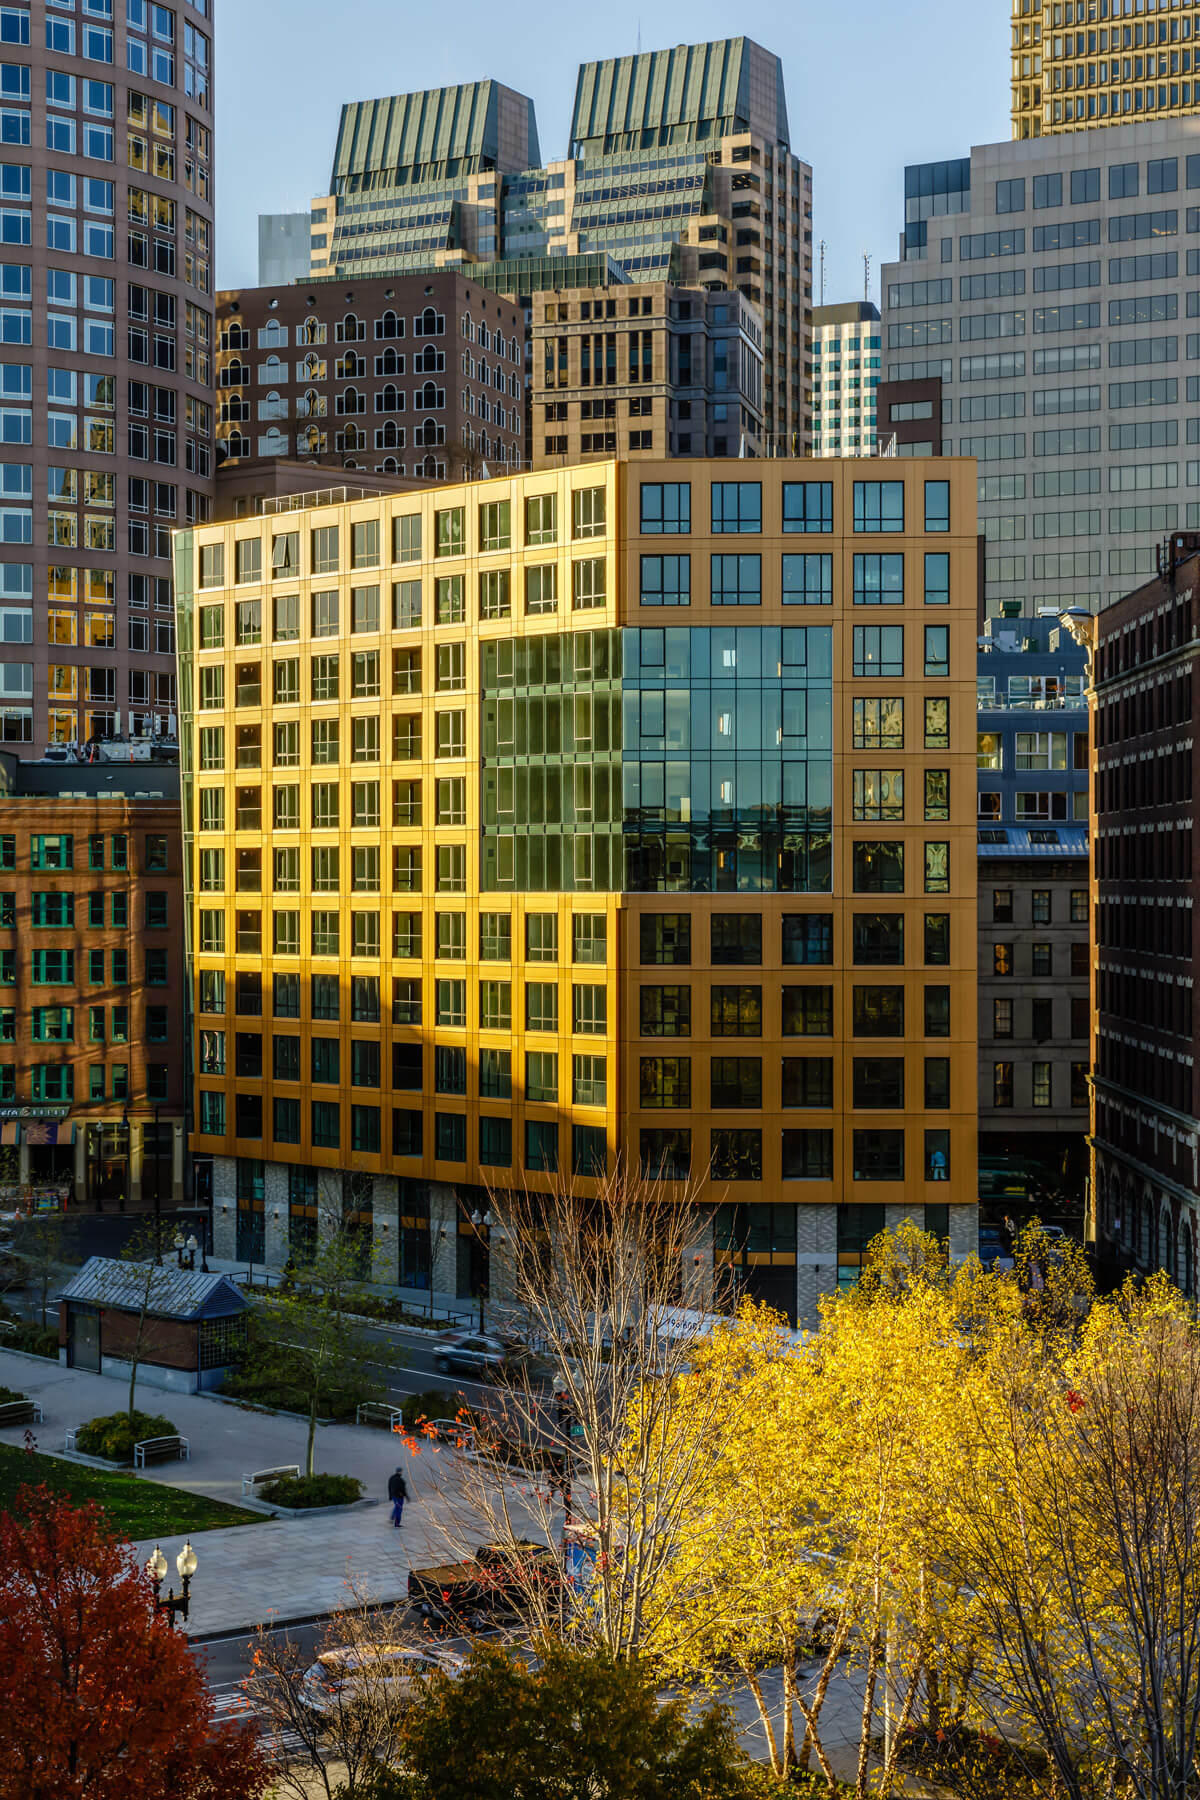 The Boulevard glowing yellow-orange in fall light, from across the Rose Kennedy Greenway.